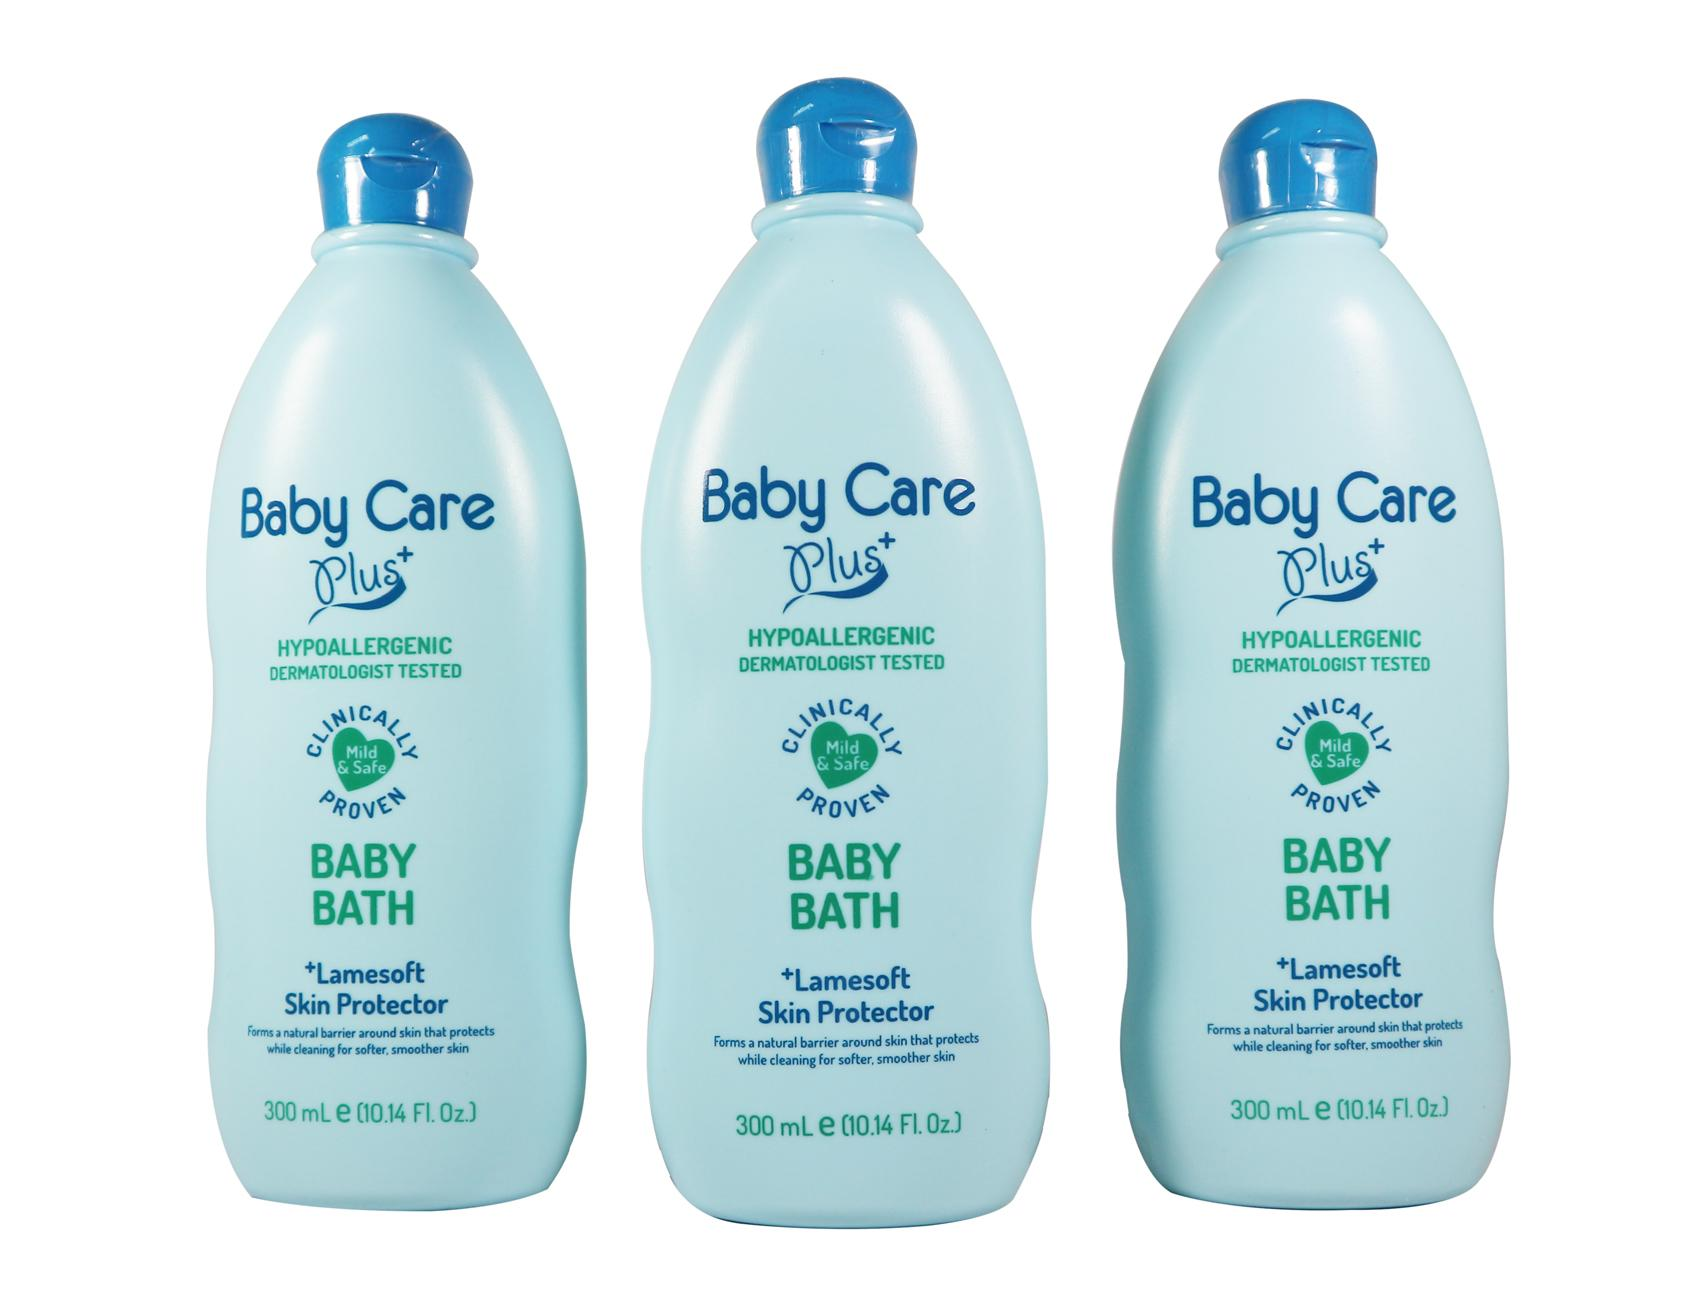 Baby Care Plus Philippines Price List Moisturizing Zwitsal Natural Skin Protector Lotion 100ml Tub Blue Bath Set Of 3 300ml